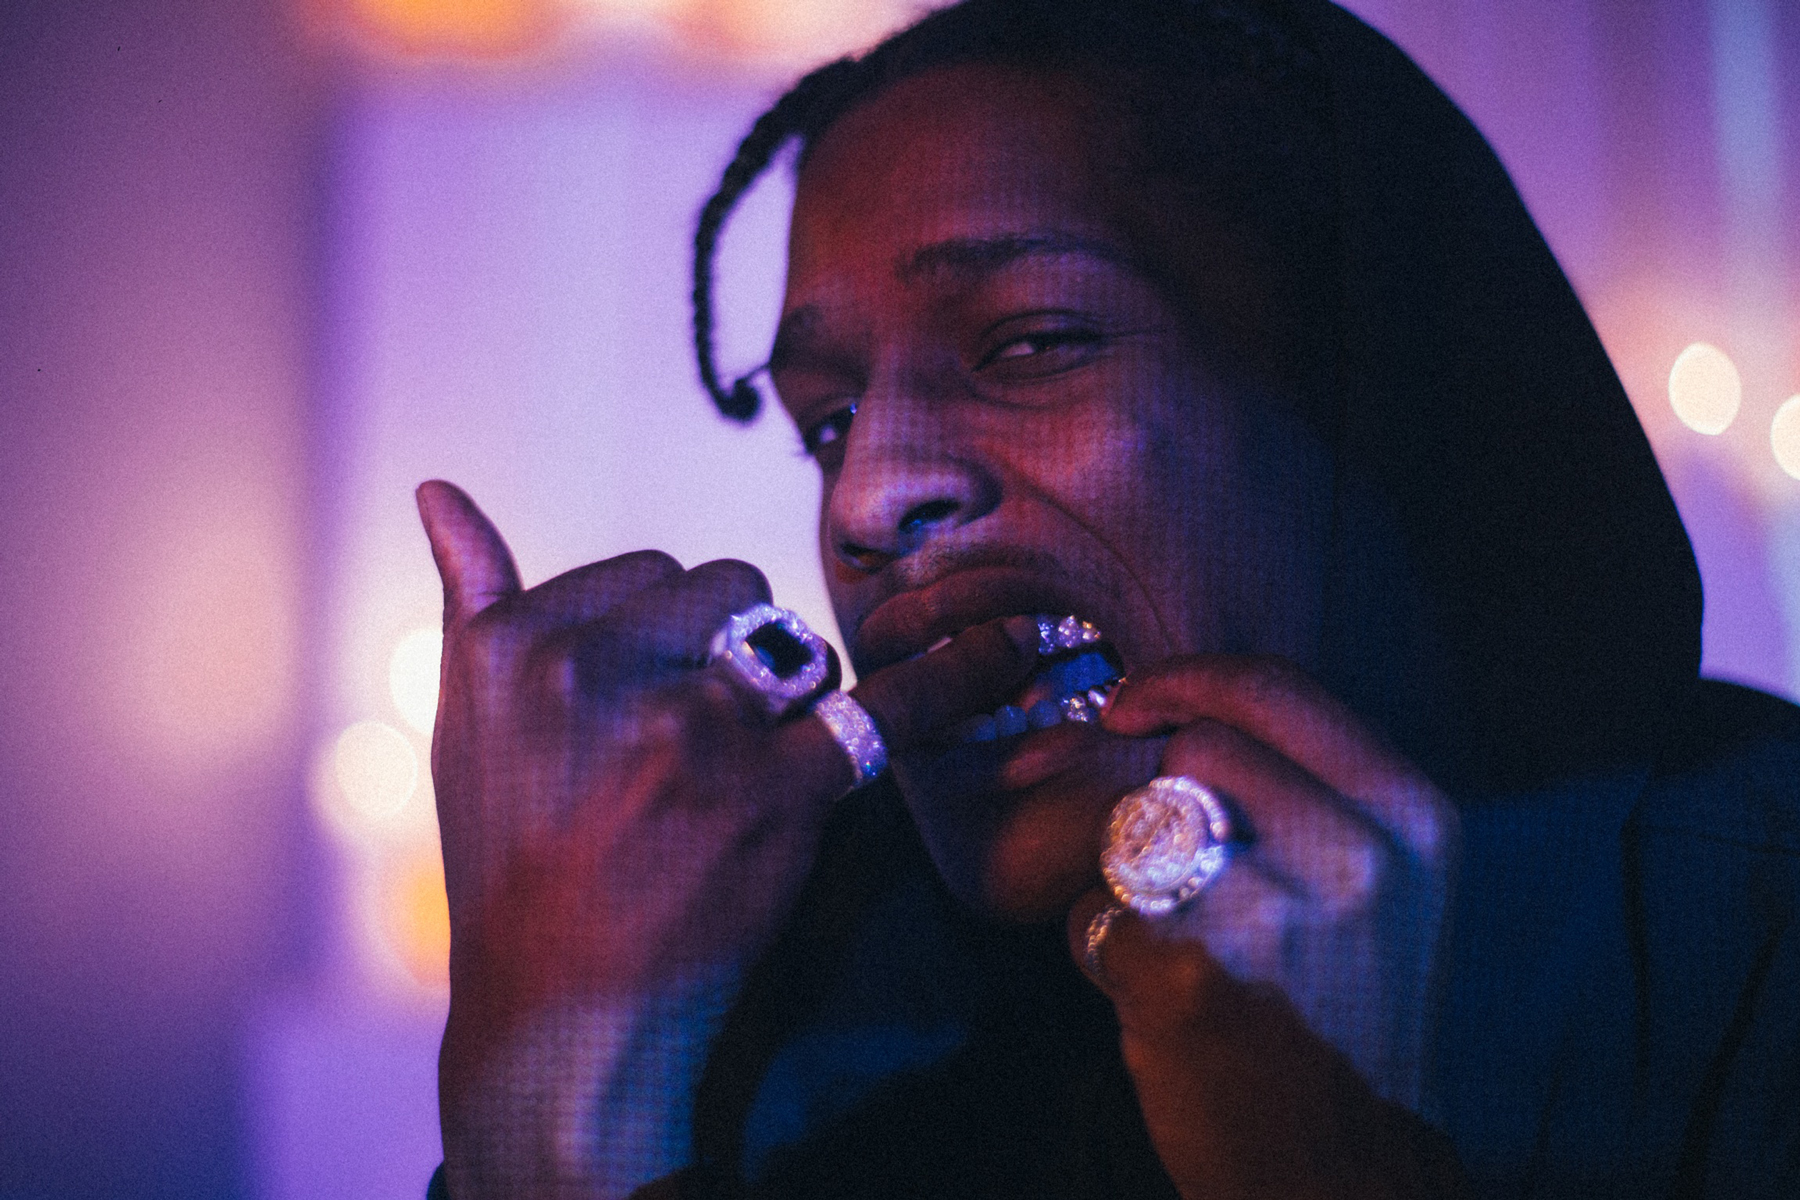 """A$AP Rocky """"Jukebox Joints"""" Music Video"""